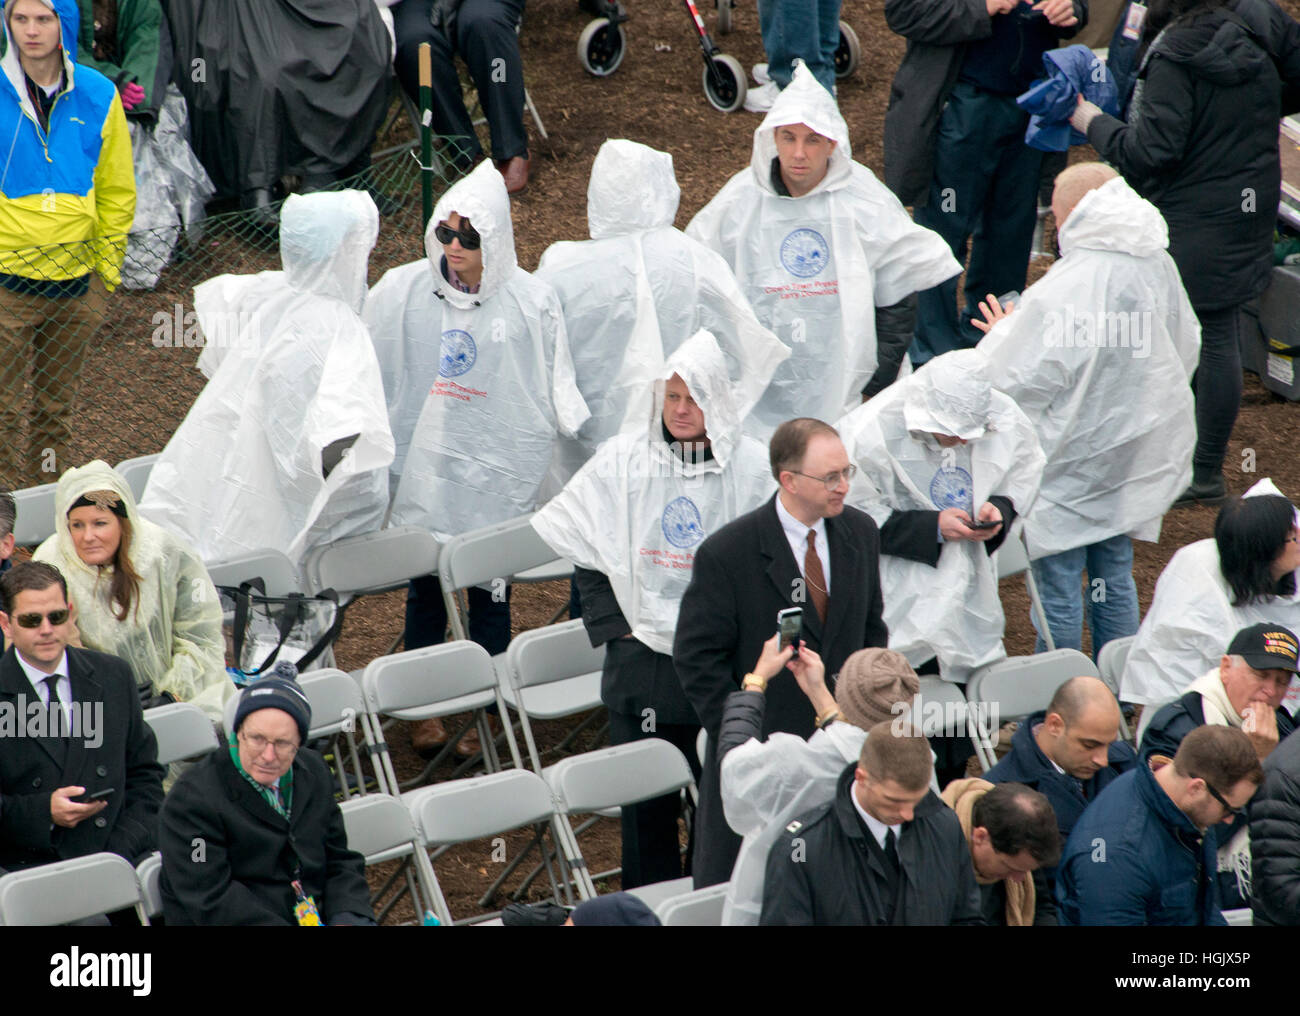 Washington, Us. 20th Jan, 2017. People wearing ponchos protect themselves from the rain prior to Donald J. Trump - Stock Image